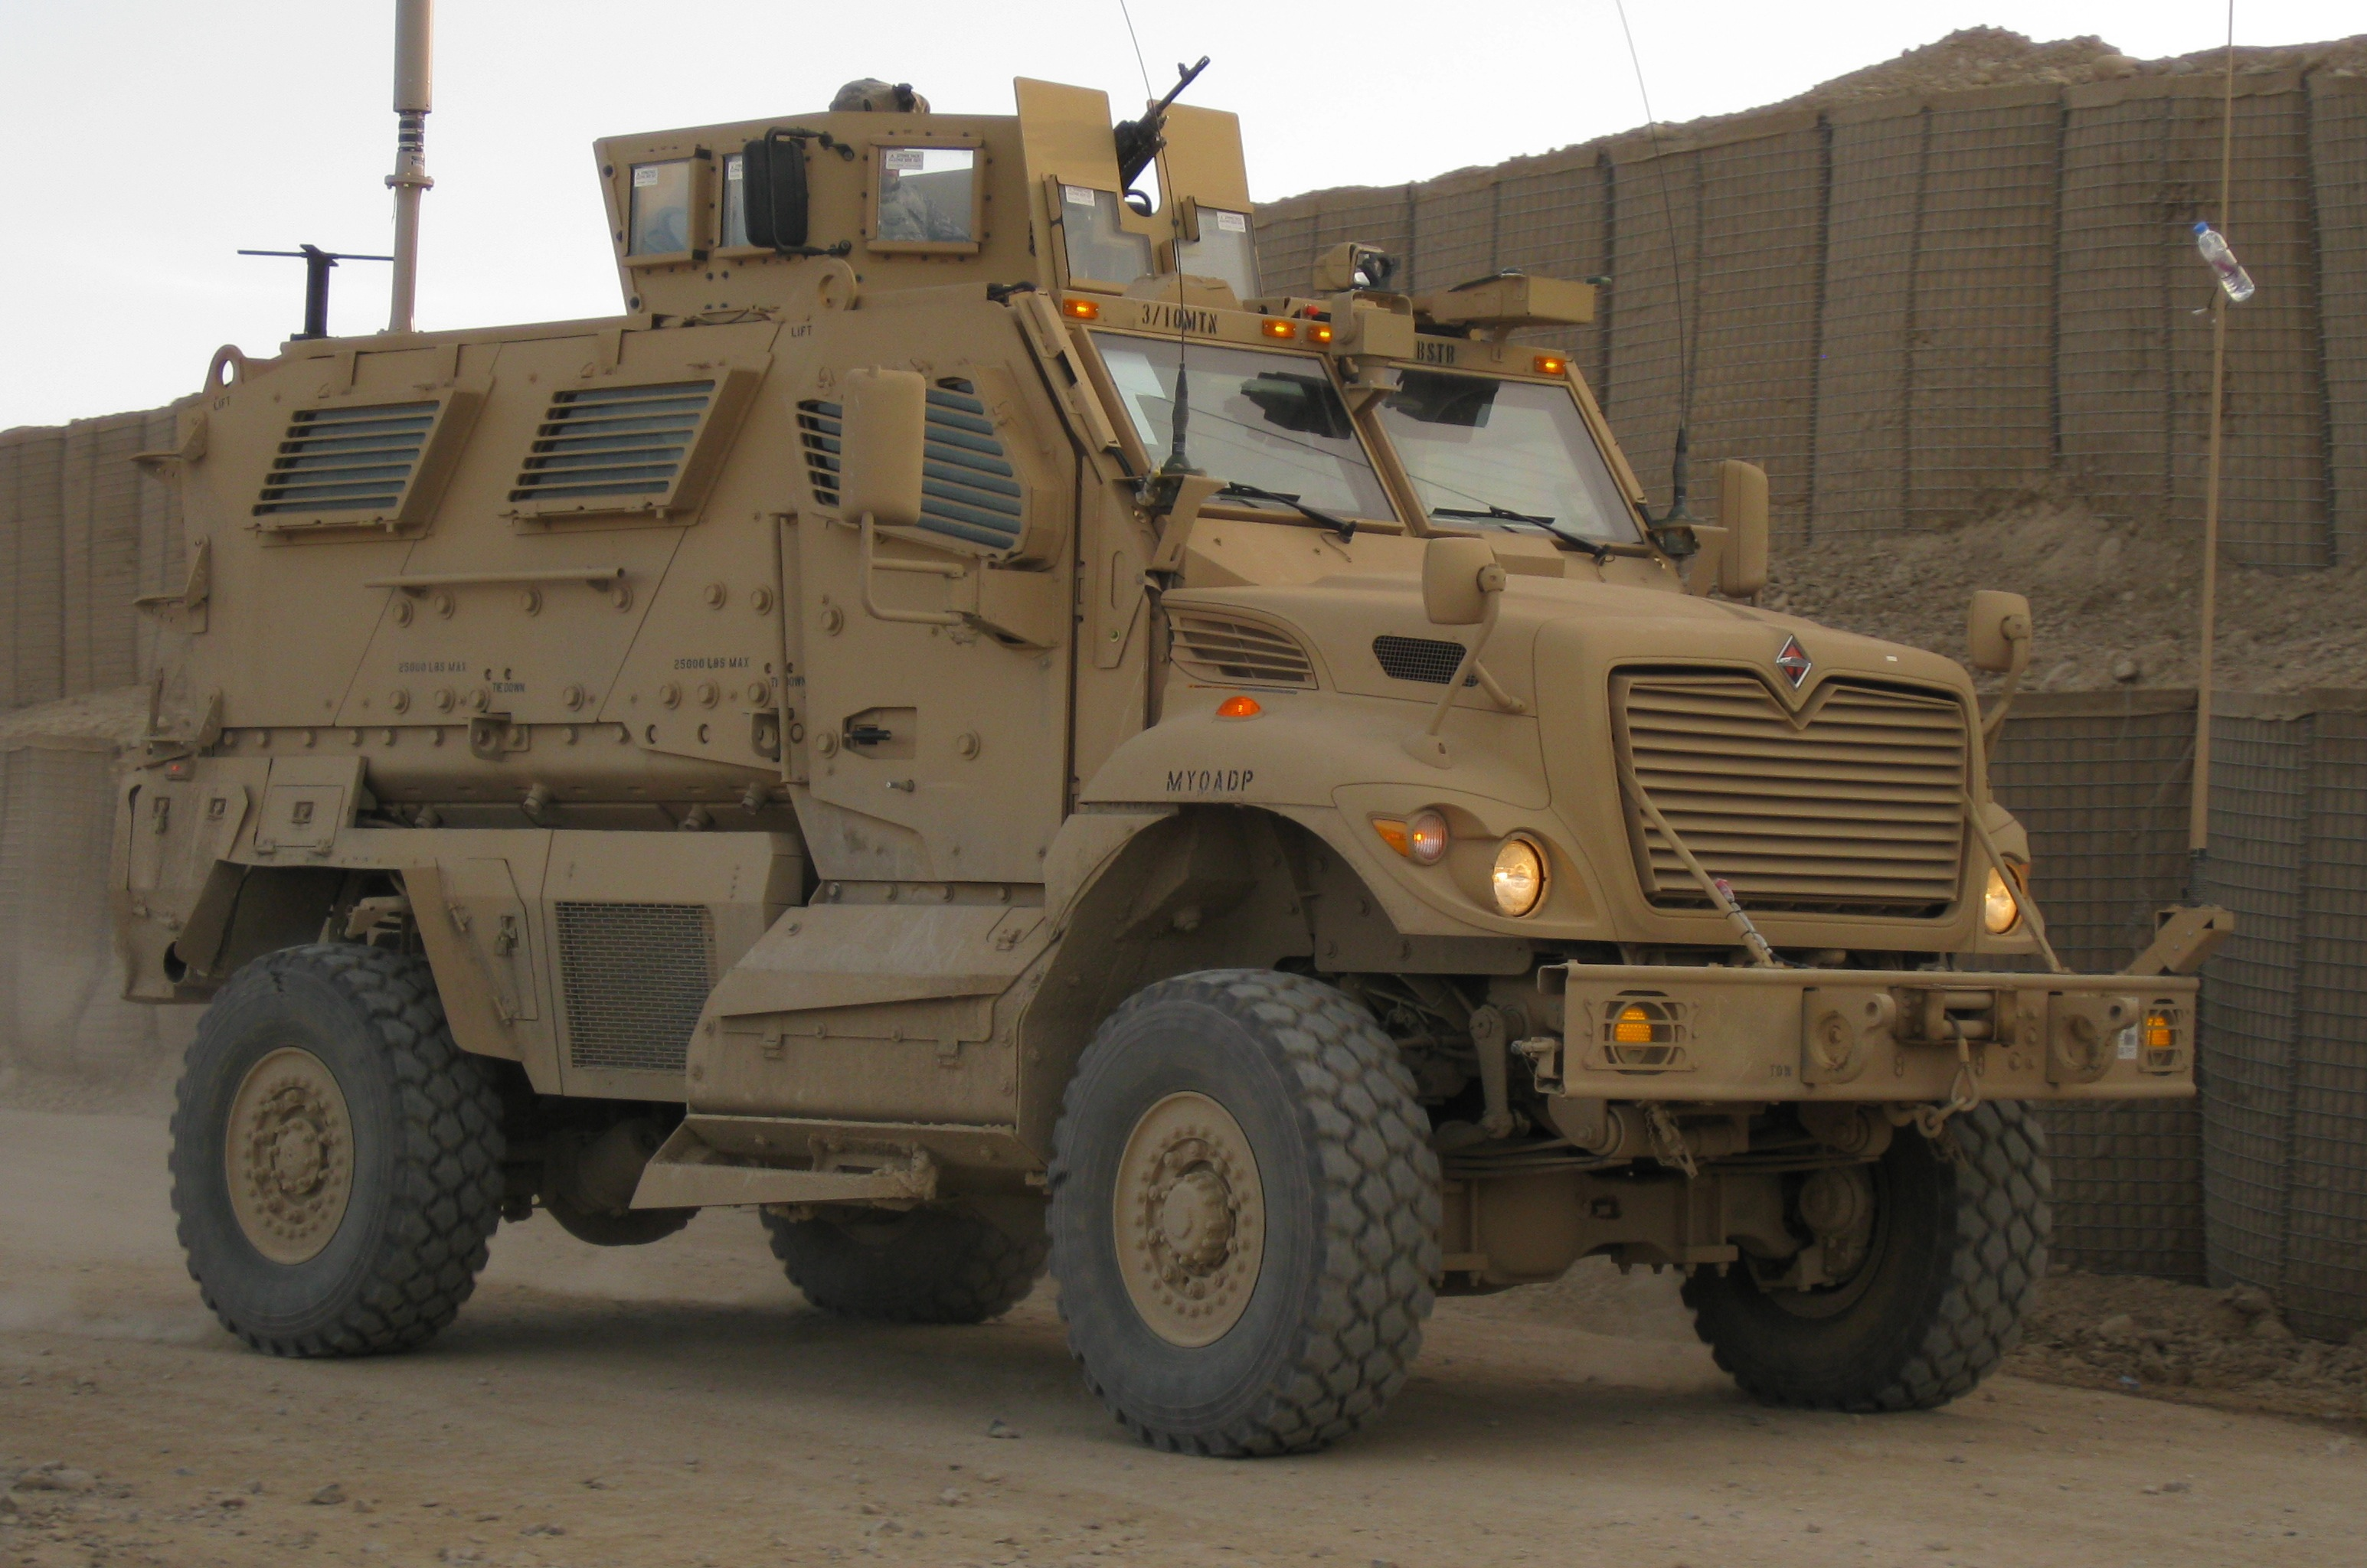 This American MaxxPro MRAP is also built from a truck chassis. Note the high center of gravity and truck-like appearance.